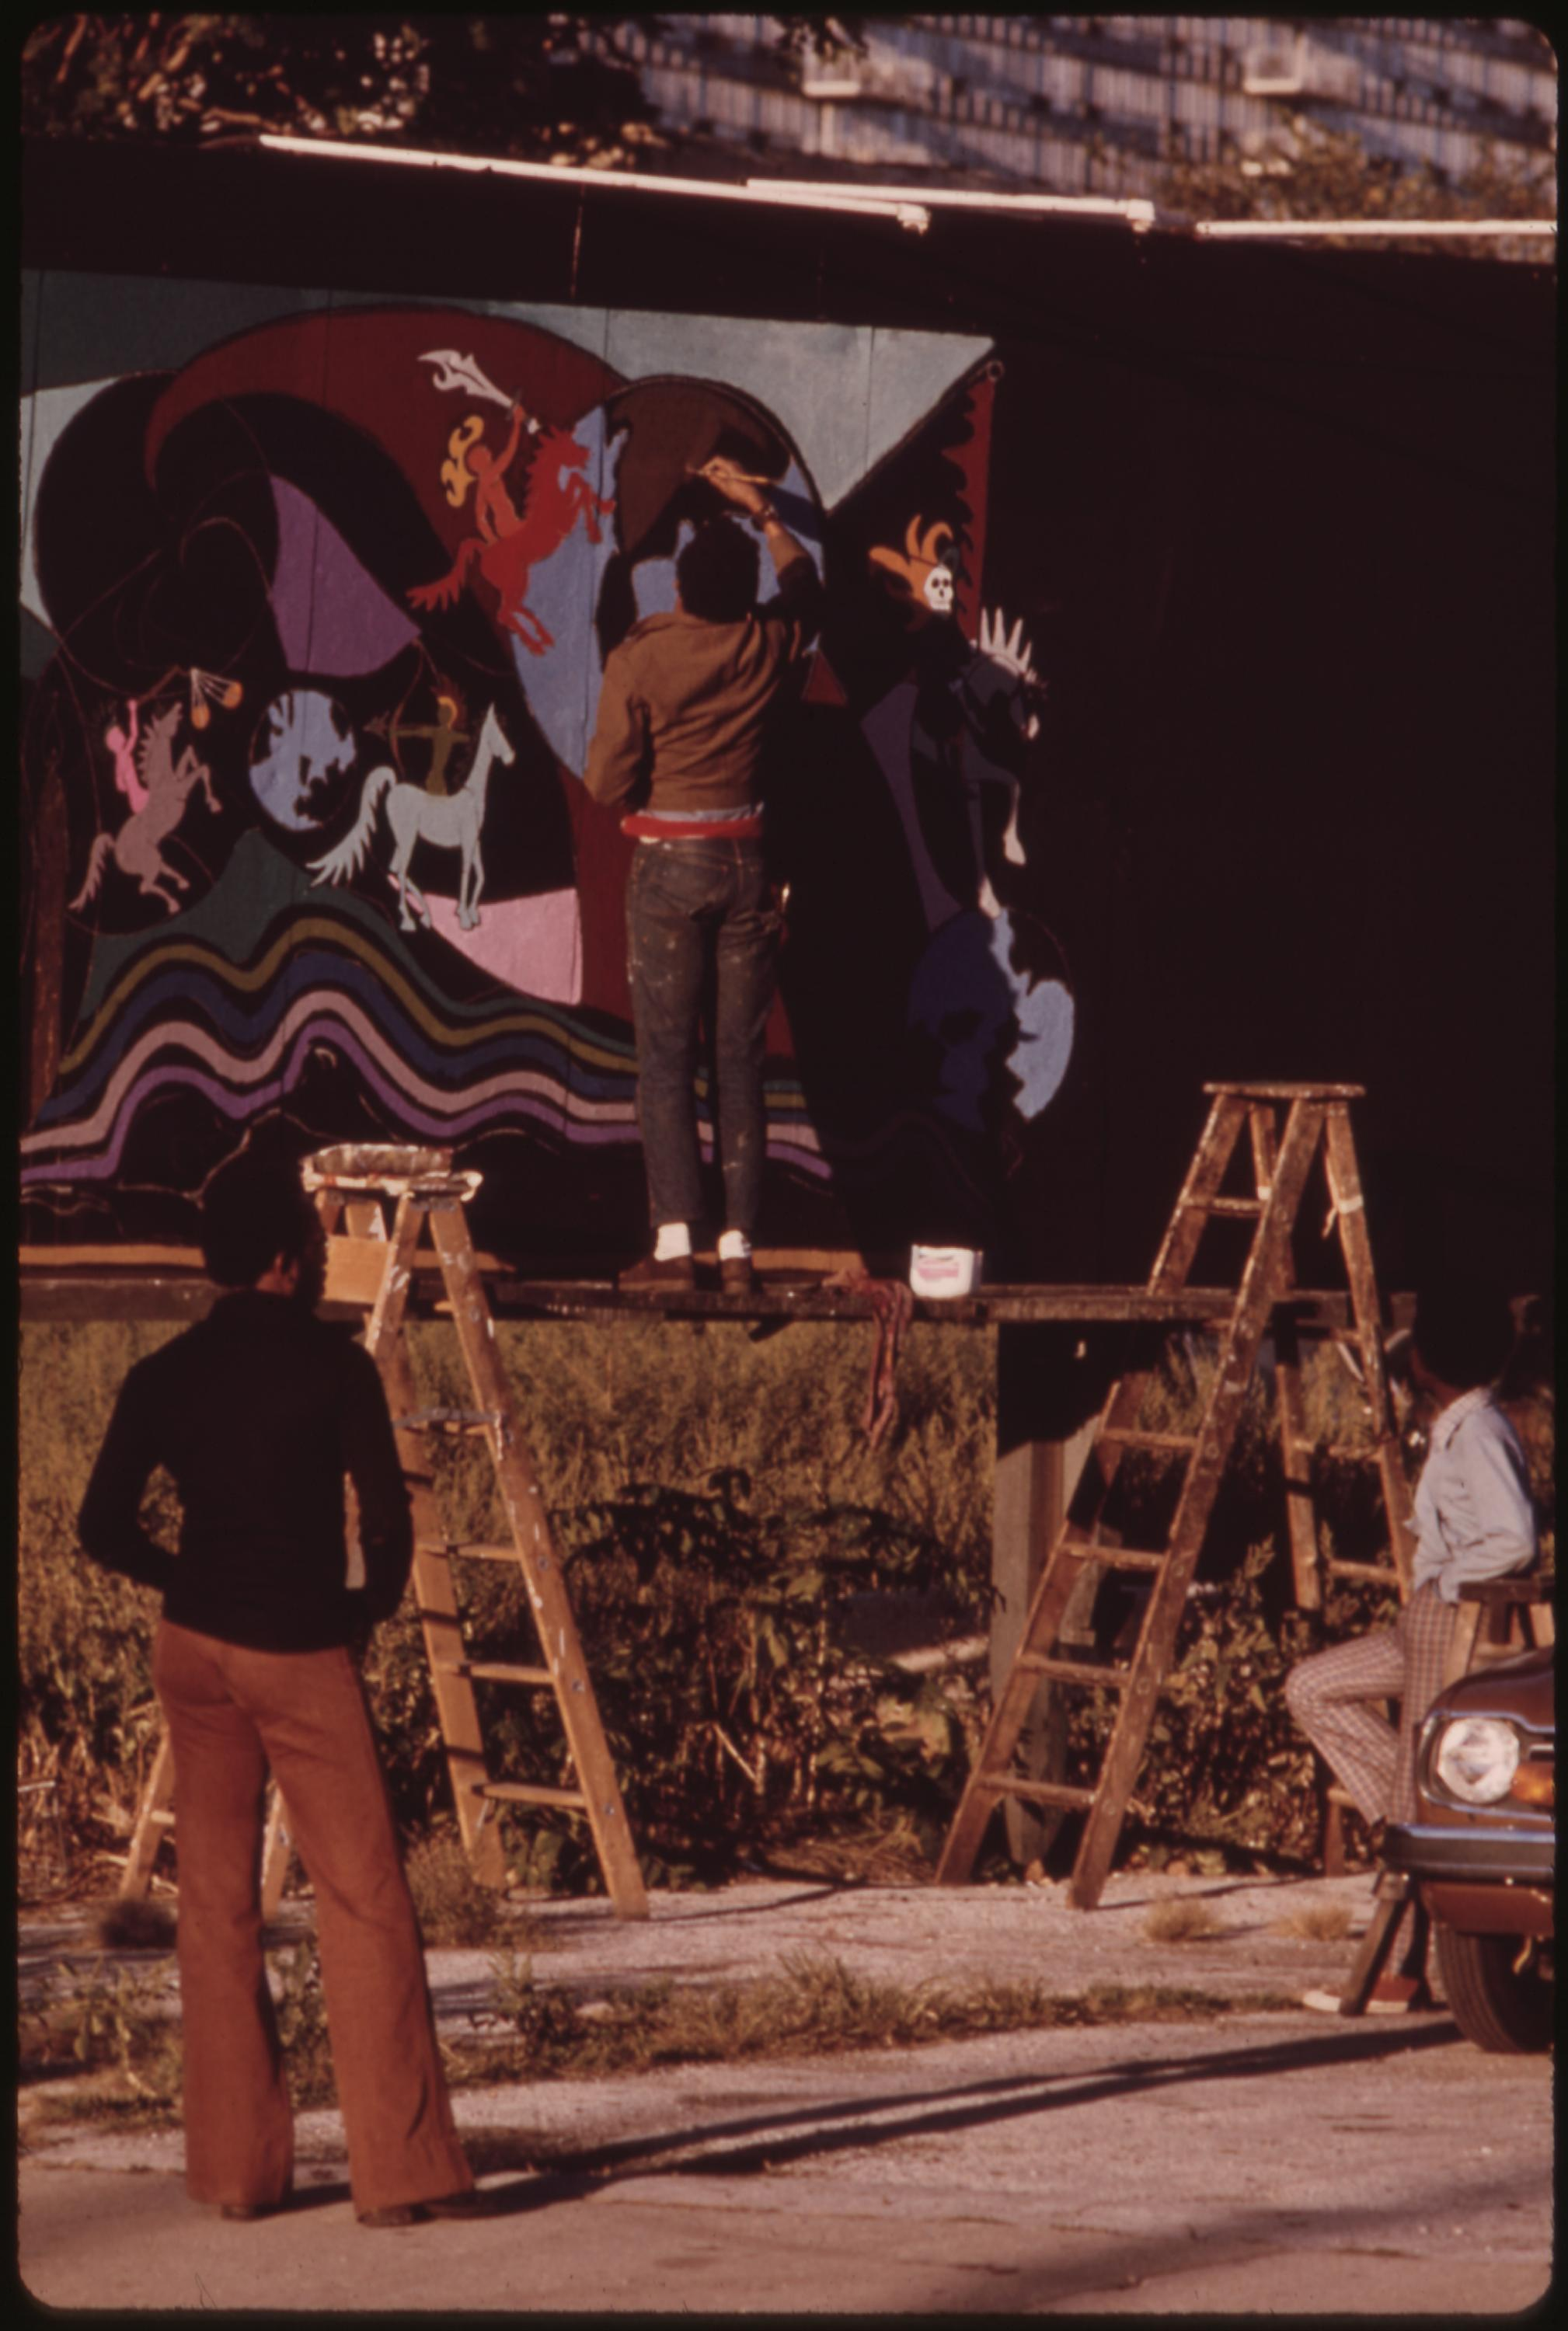 Artist Ron Blackburn Painting An Outdoor Wall Mural At The Corner Of 33rd And Giles Street In Chicago, 06:1973